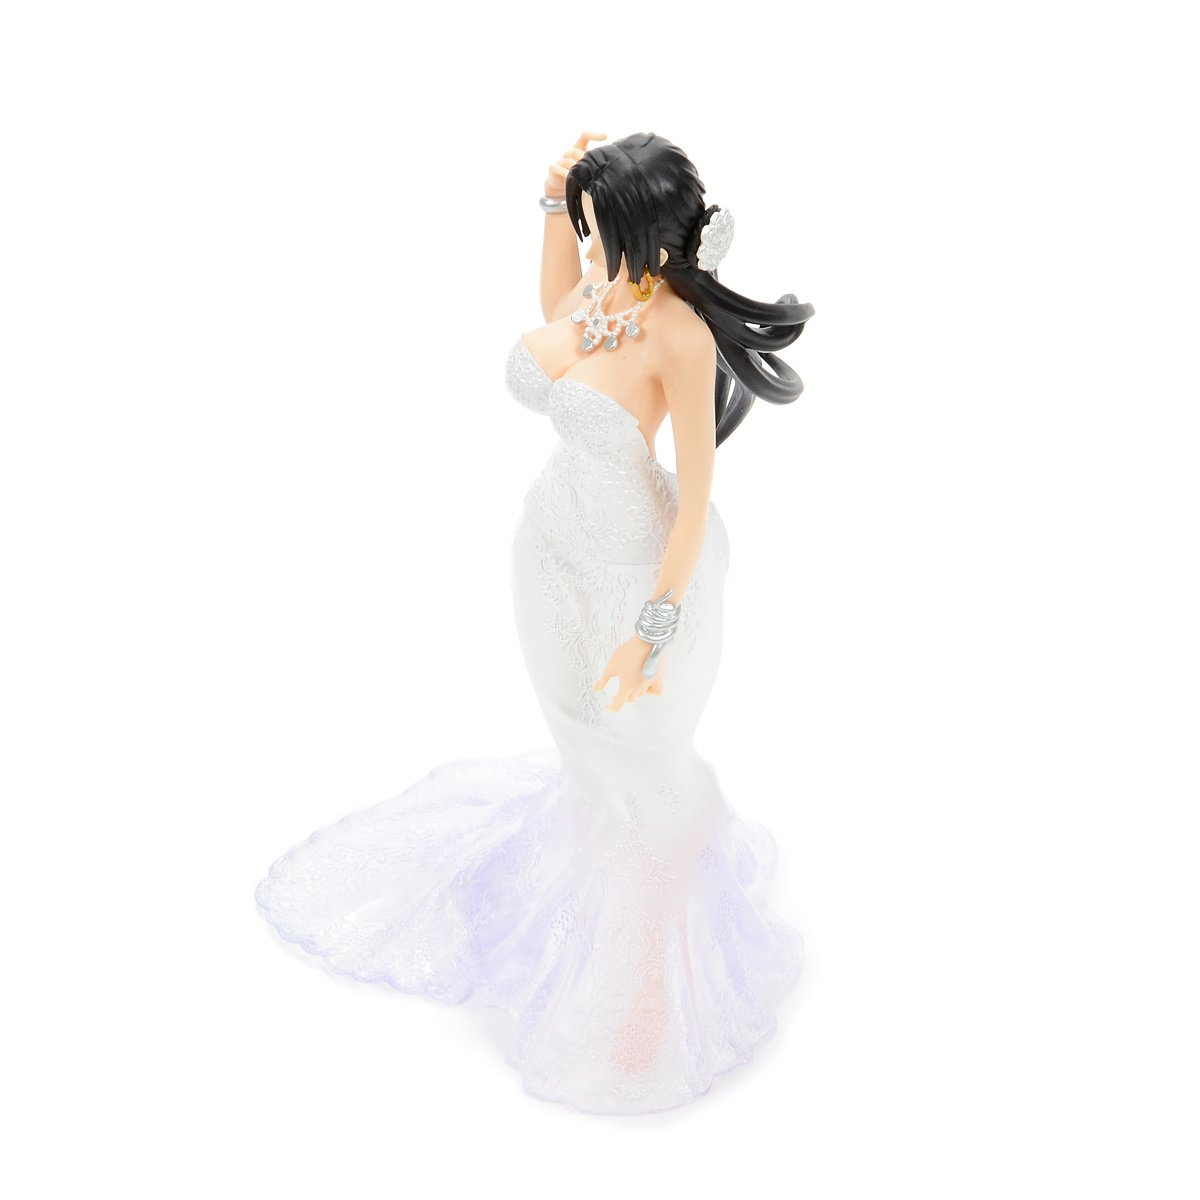 Banpresto One Piece Lady Edge Wedding Boa Hancock Figure A White Dress Bridal